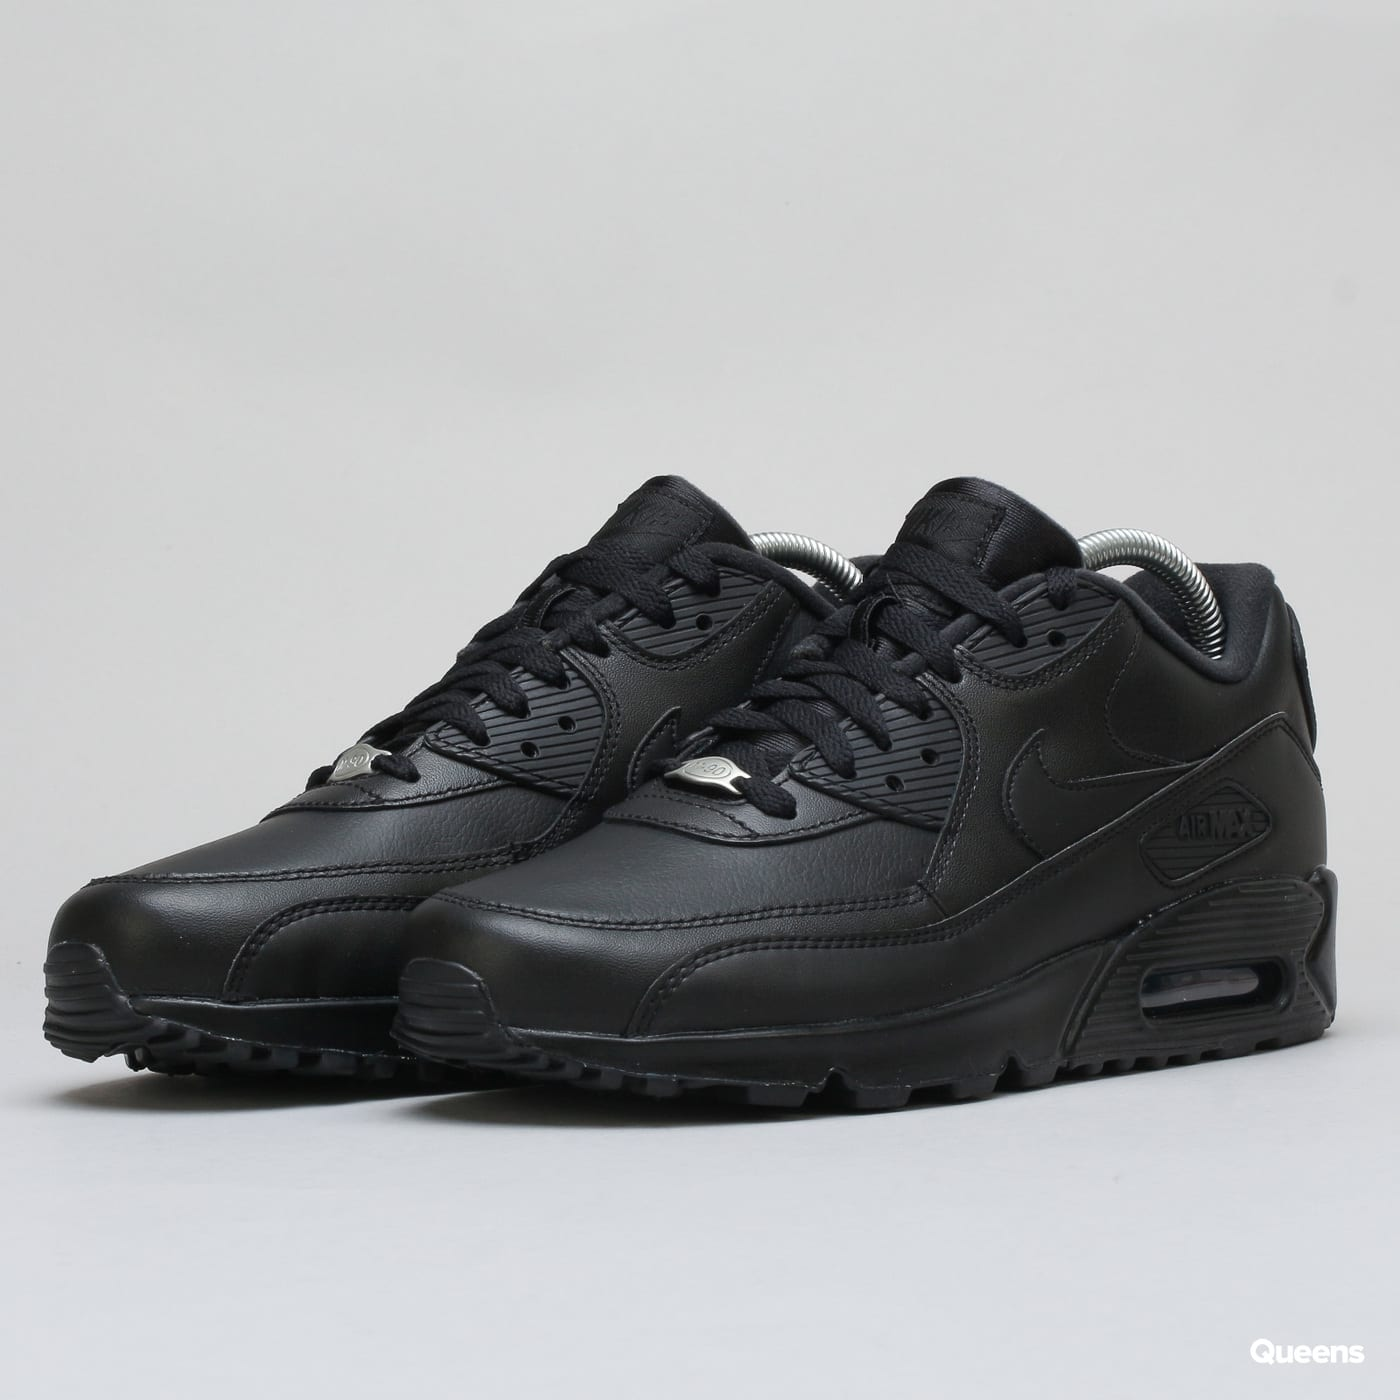 Boty Nike Air Max 90 Leather (302519-001) – Queens 💚 768ab0888a